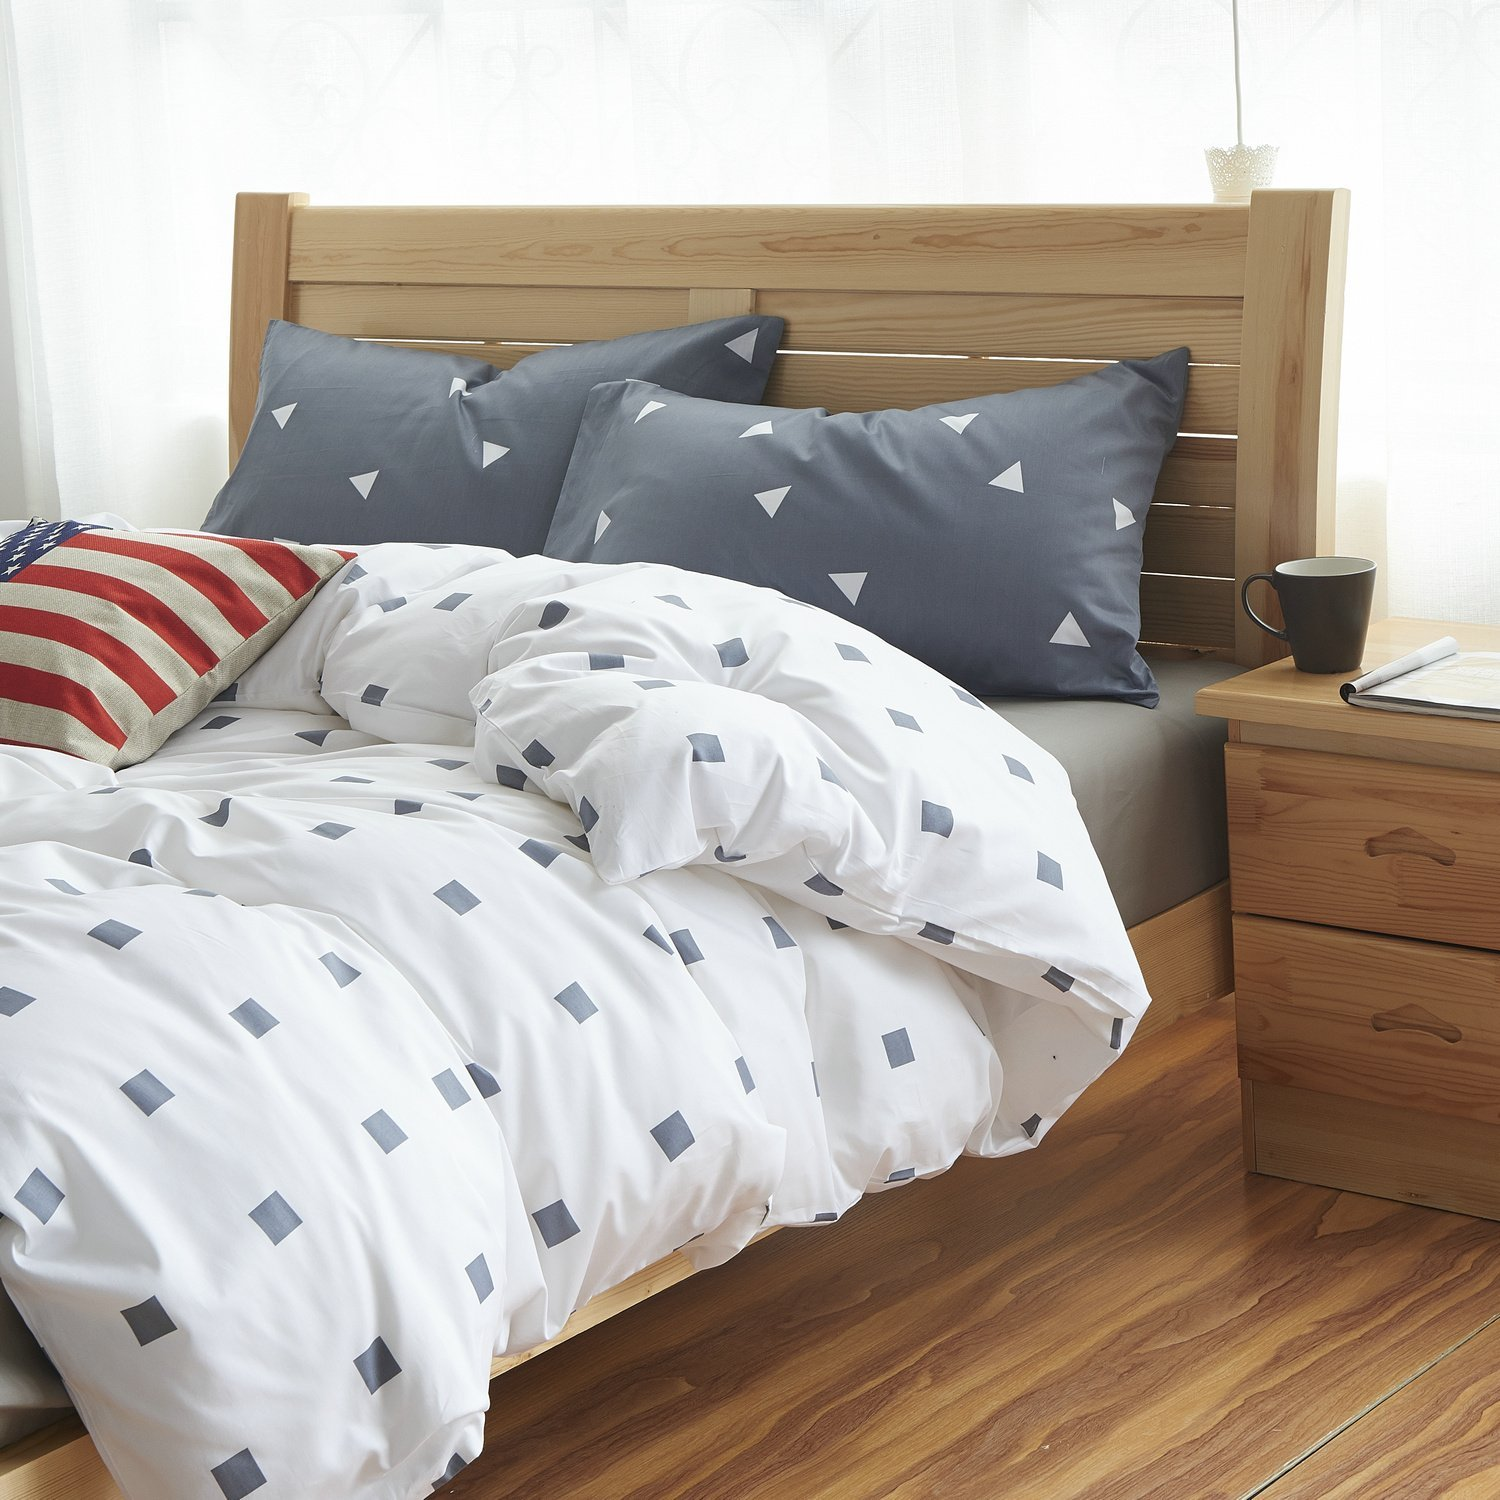 Modern girls bedding - Fashion Boys And Girls Bedding Set Modern European Style Bed Cover Queen Full Twin China